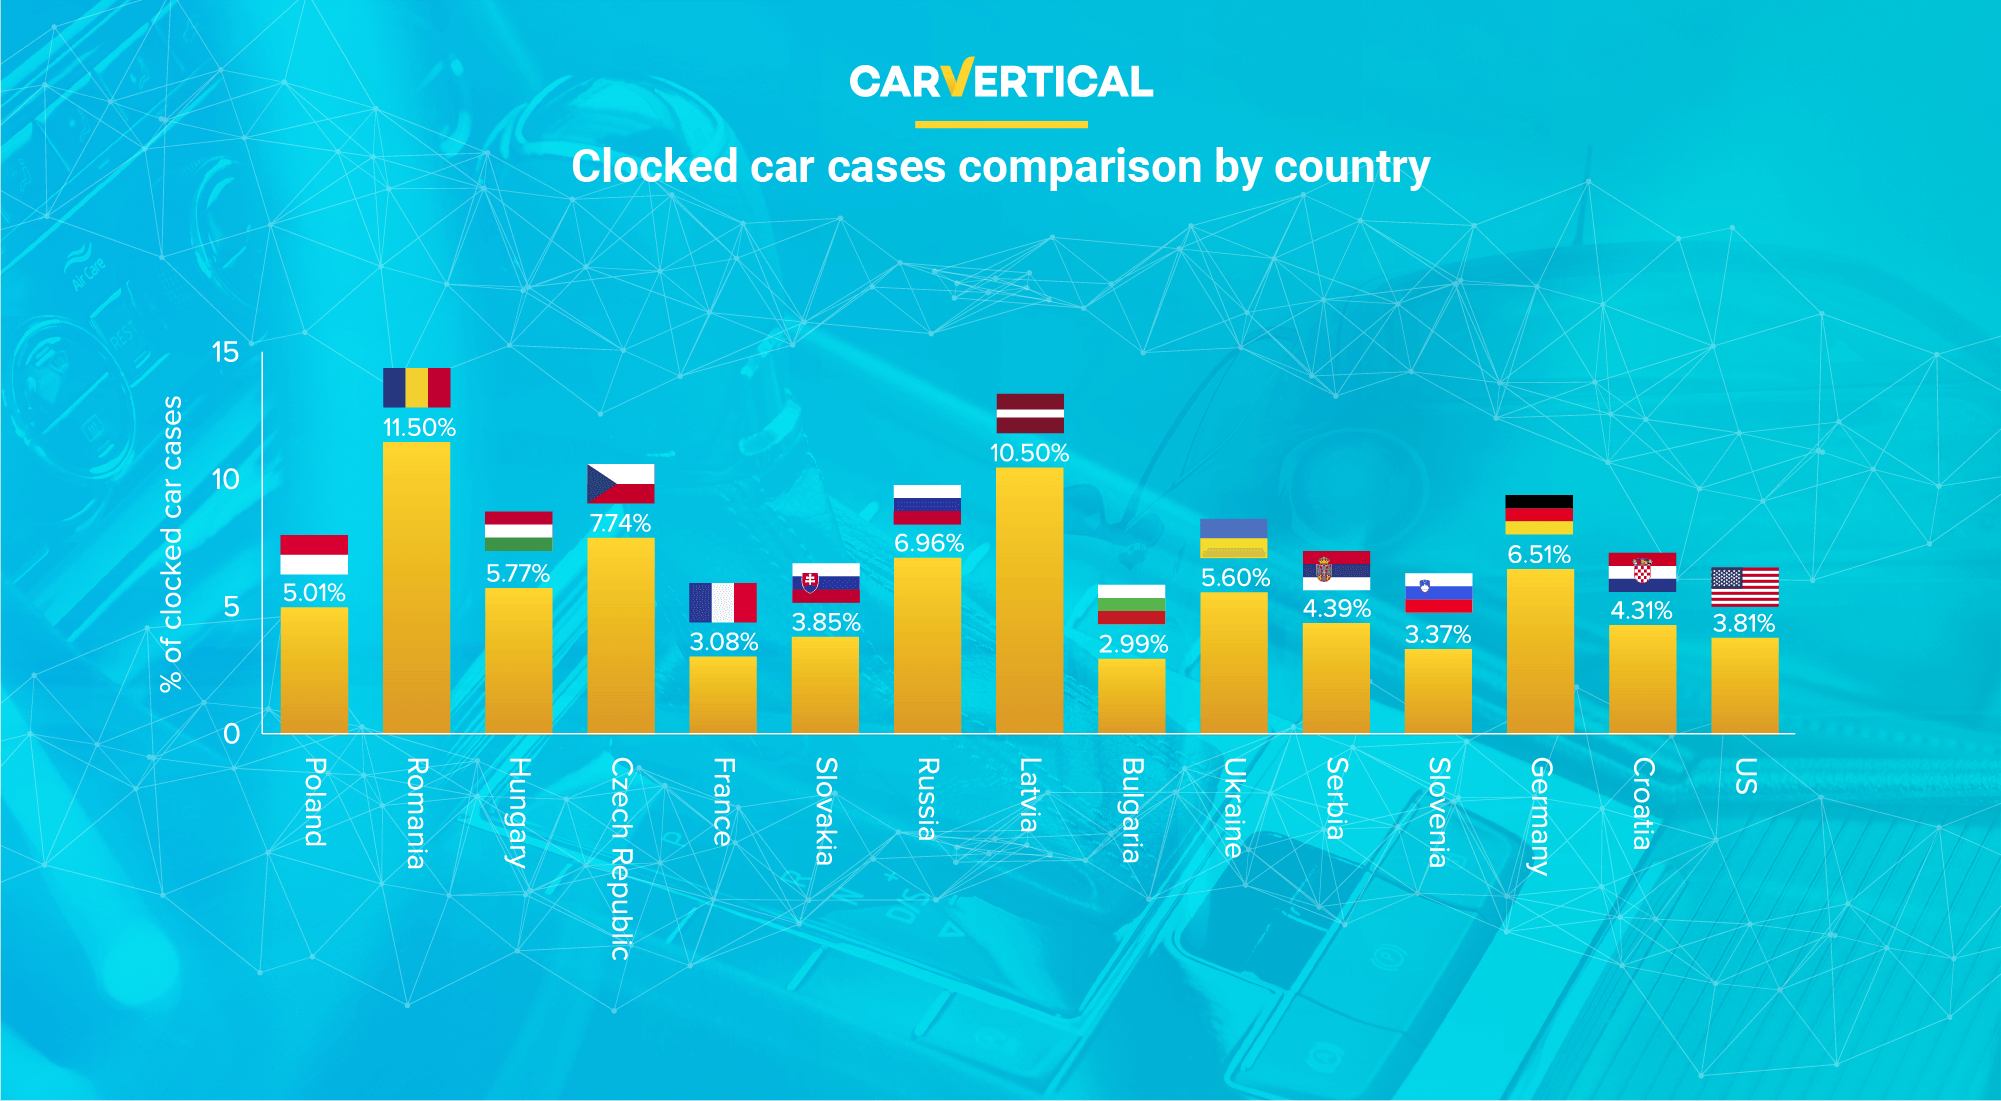 Clocked car cases comparison by country